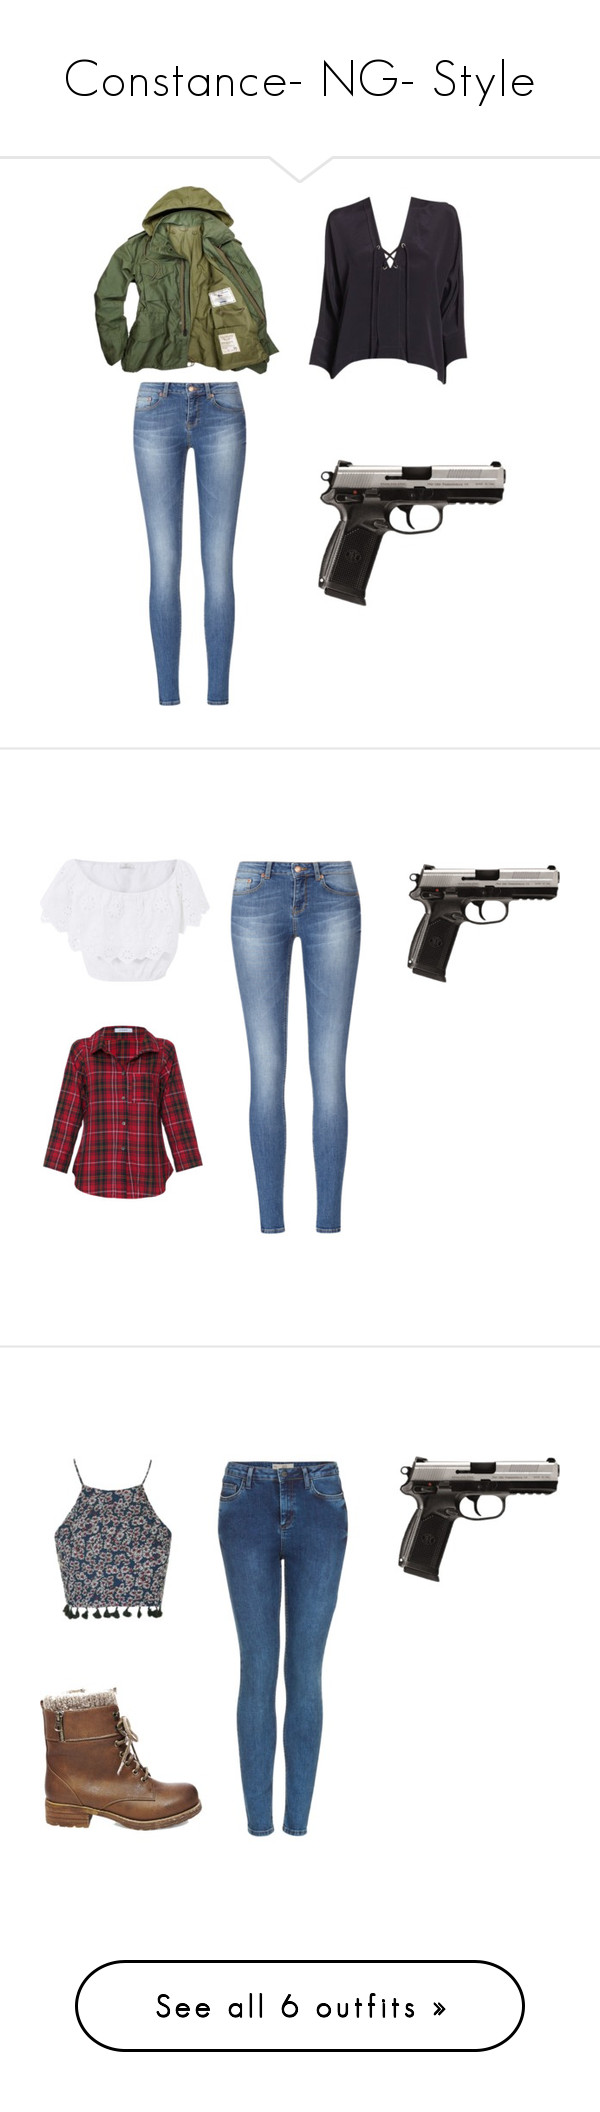 """""""Constance- NG- Style"""" by inestrindade on Polyvore featuring Miguelina, Vitamin, Topshop, Steve Madden and MANGO"""